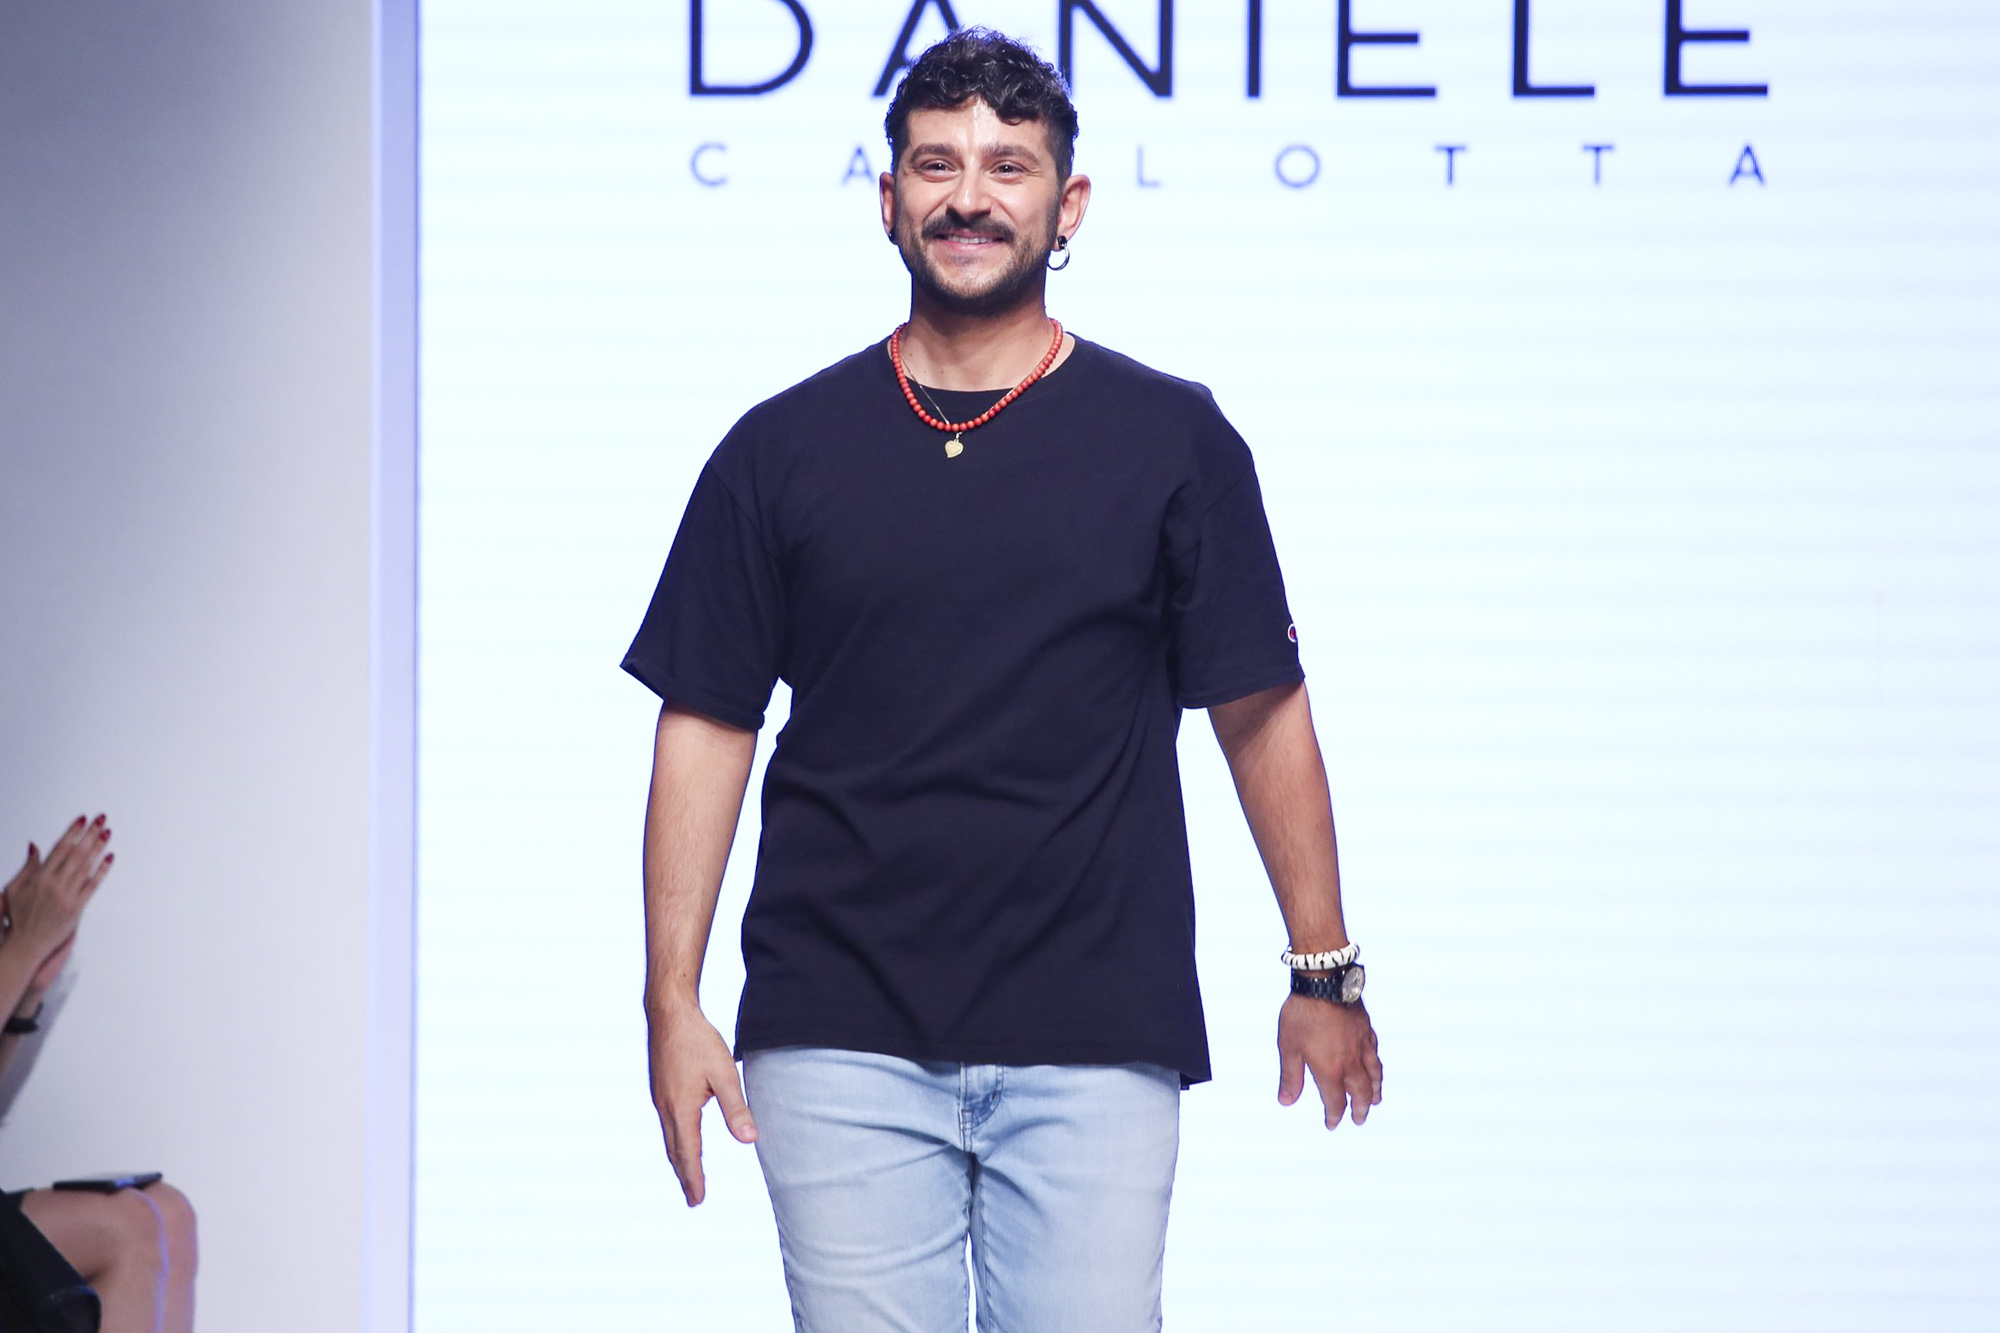 Daniele Carlotta fashion show, Arab Fashion Week collection Spring Summer 2020 in Dubai